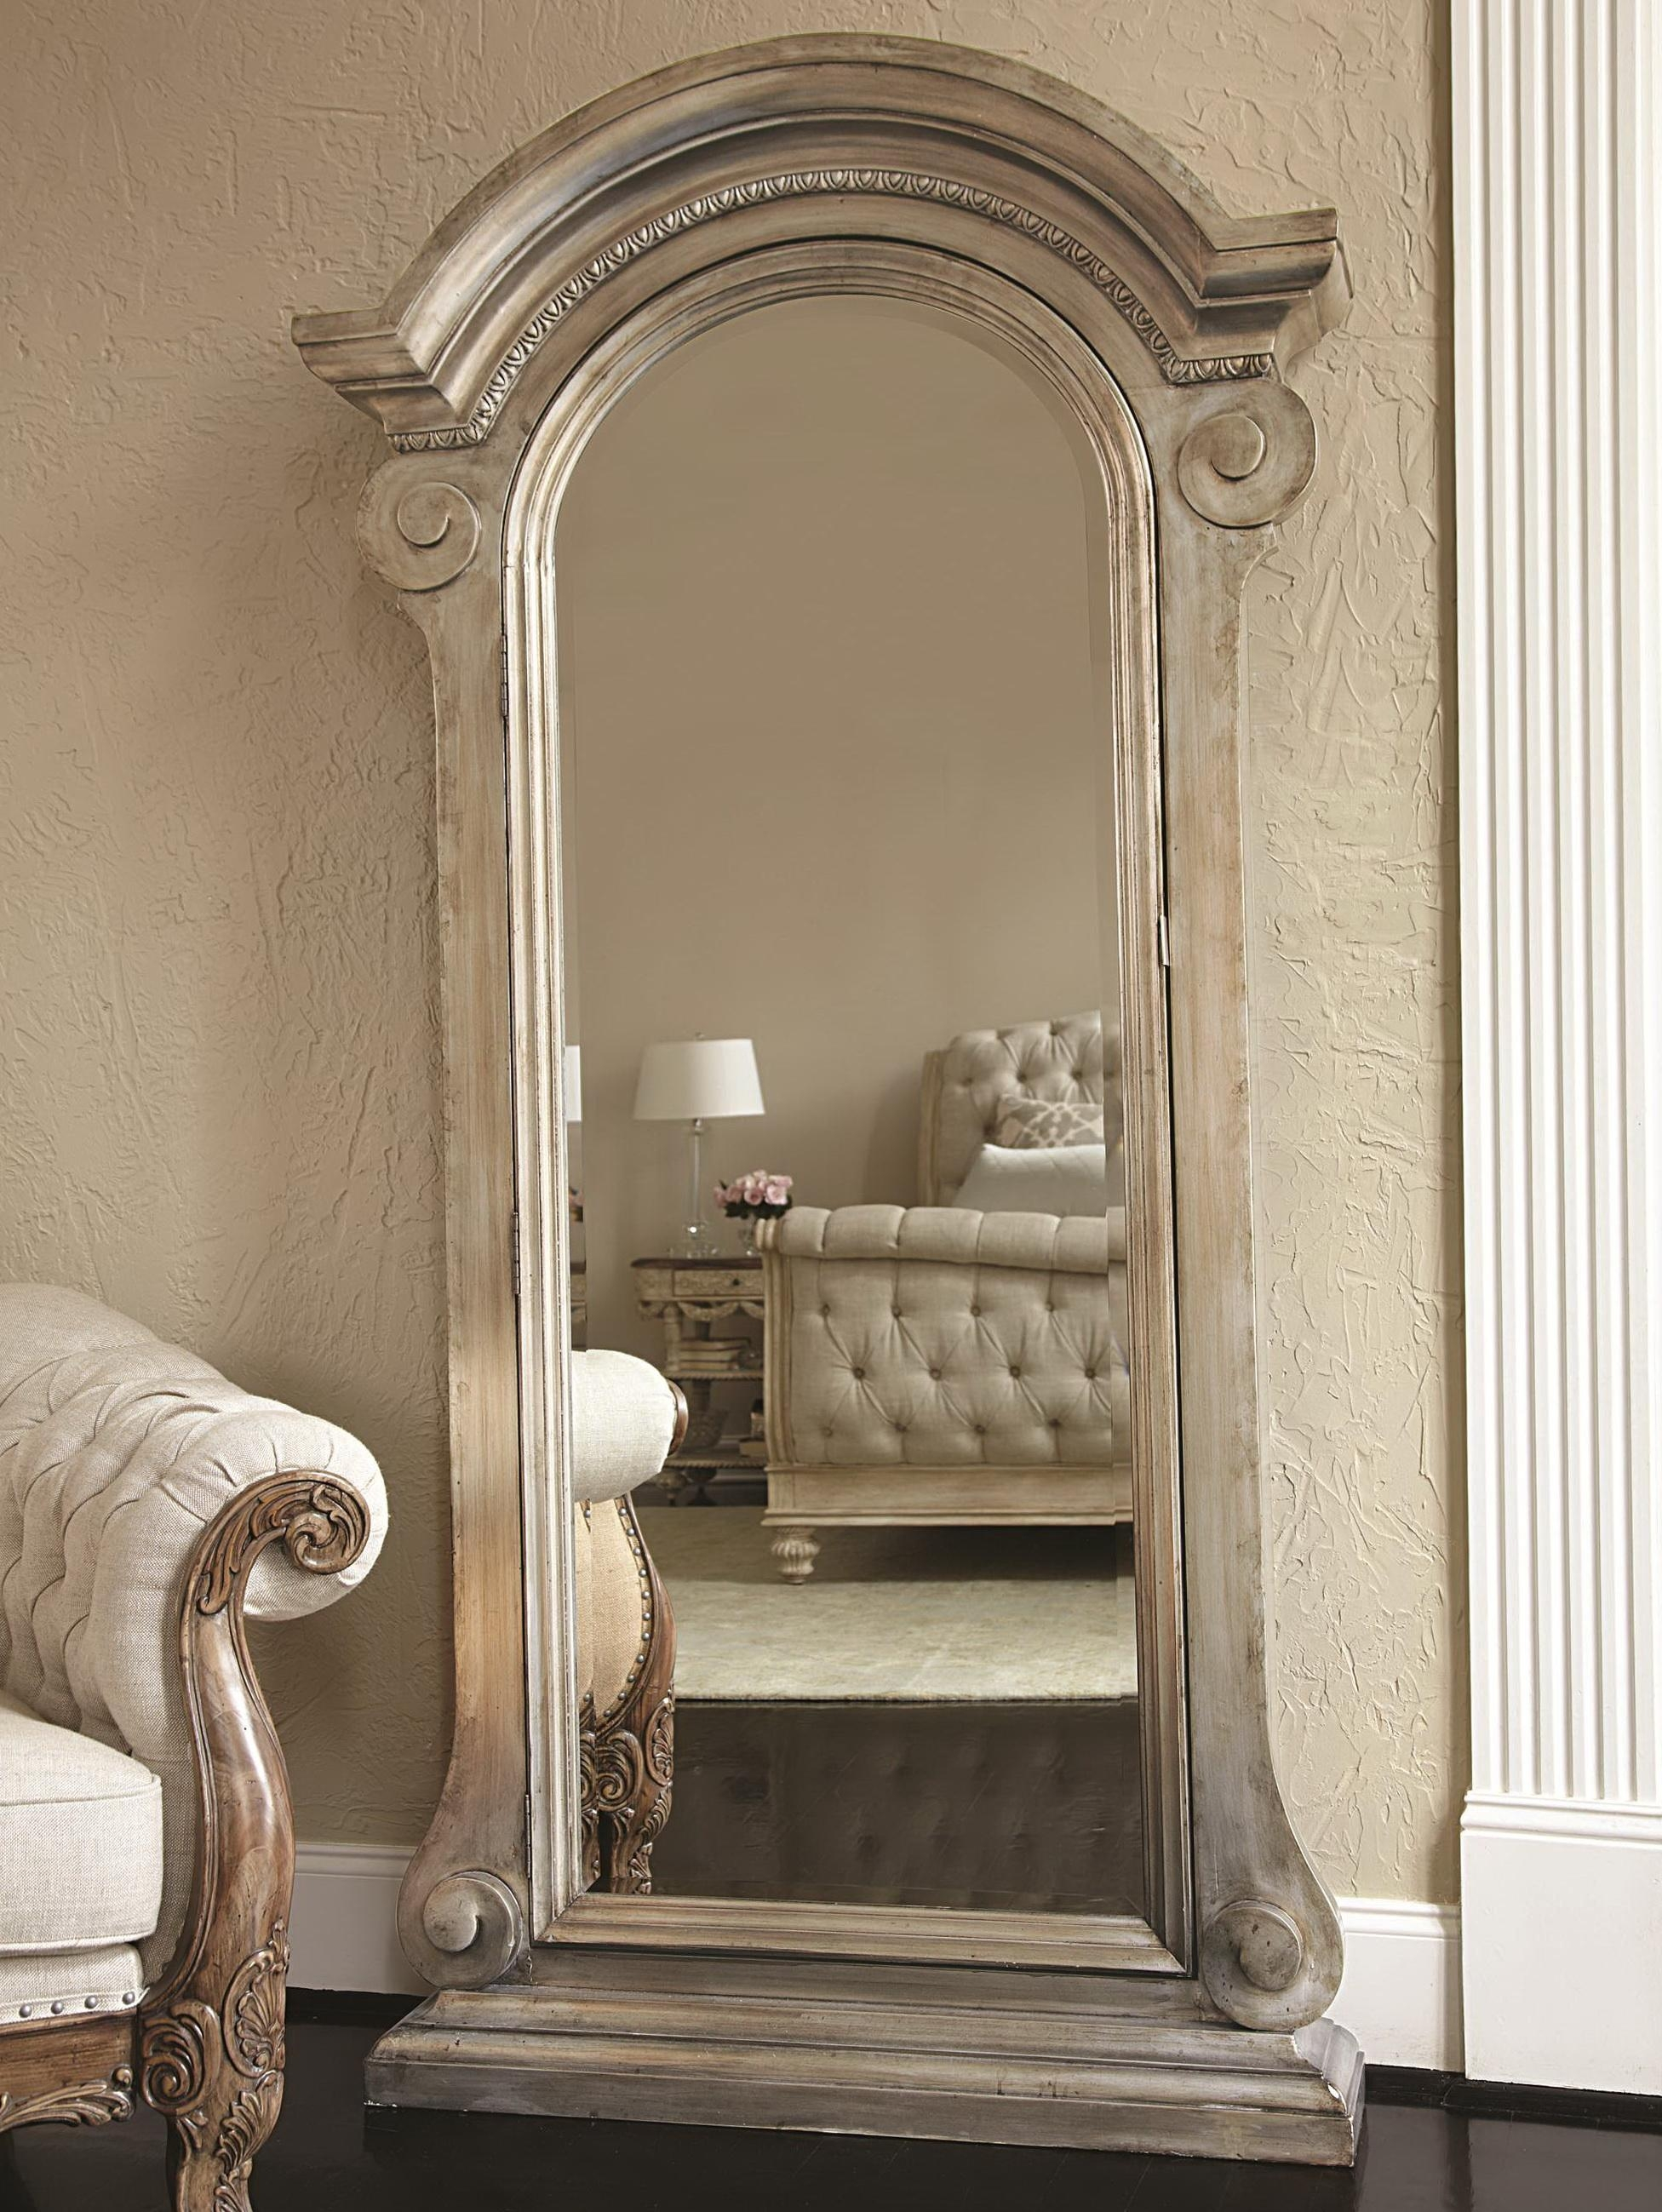 Furniture: Black Jewelry Armoire Mirror On Wooden Floor And Cream Regarding Cream Standing Mirror (Image 10 of 20)